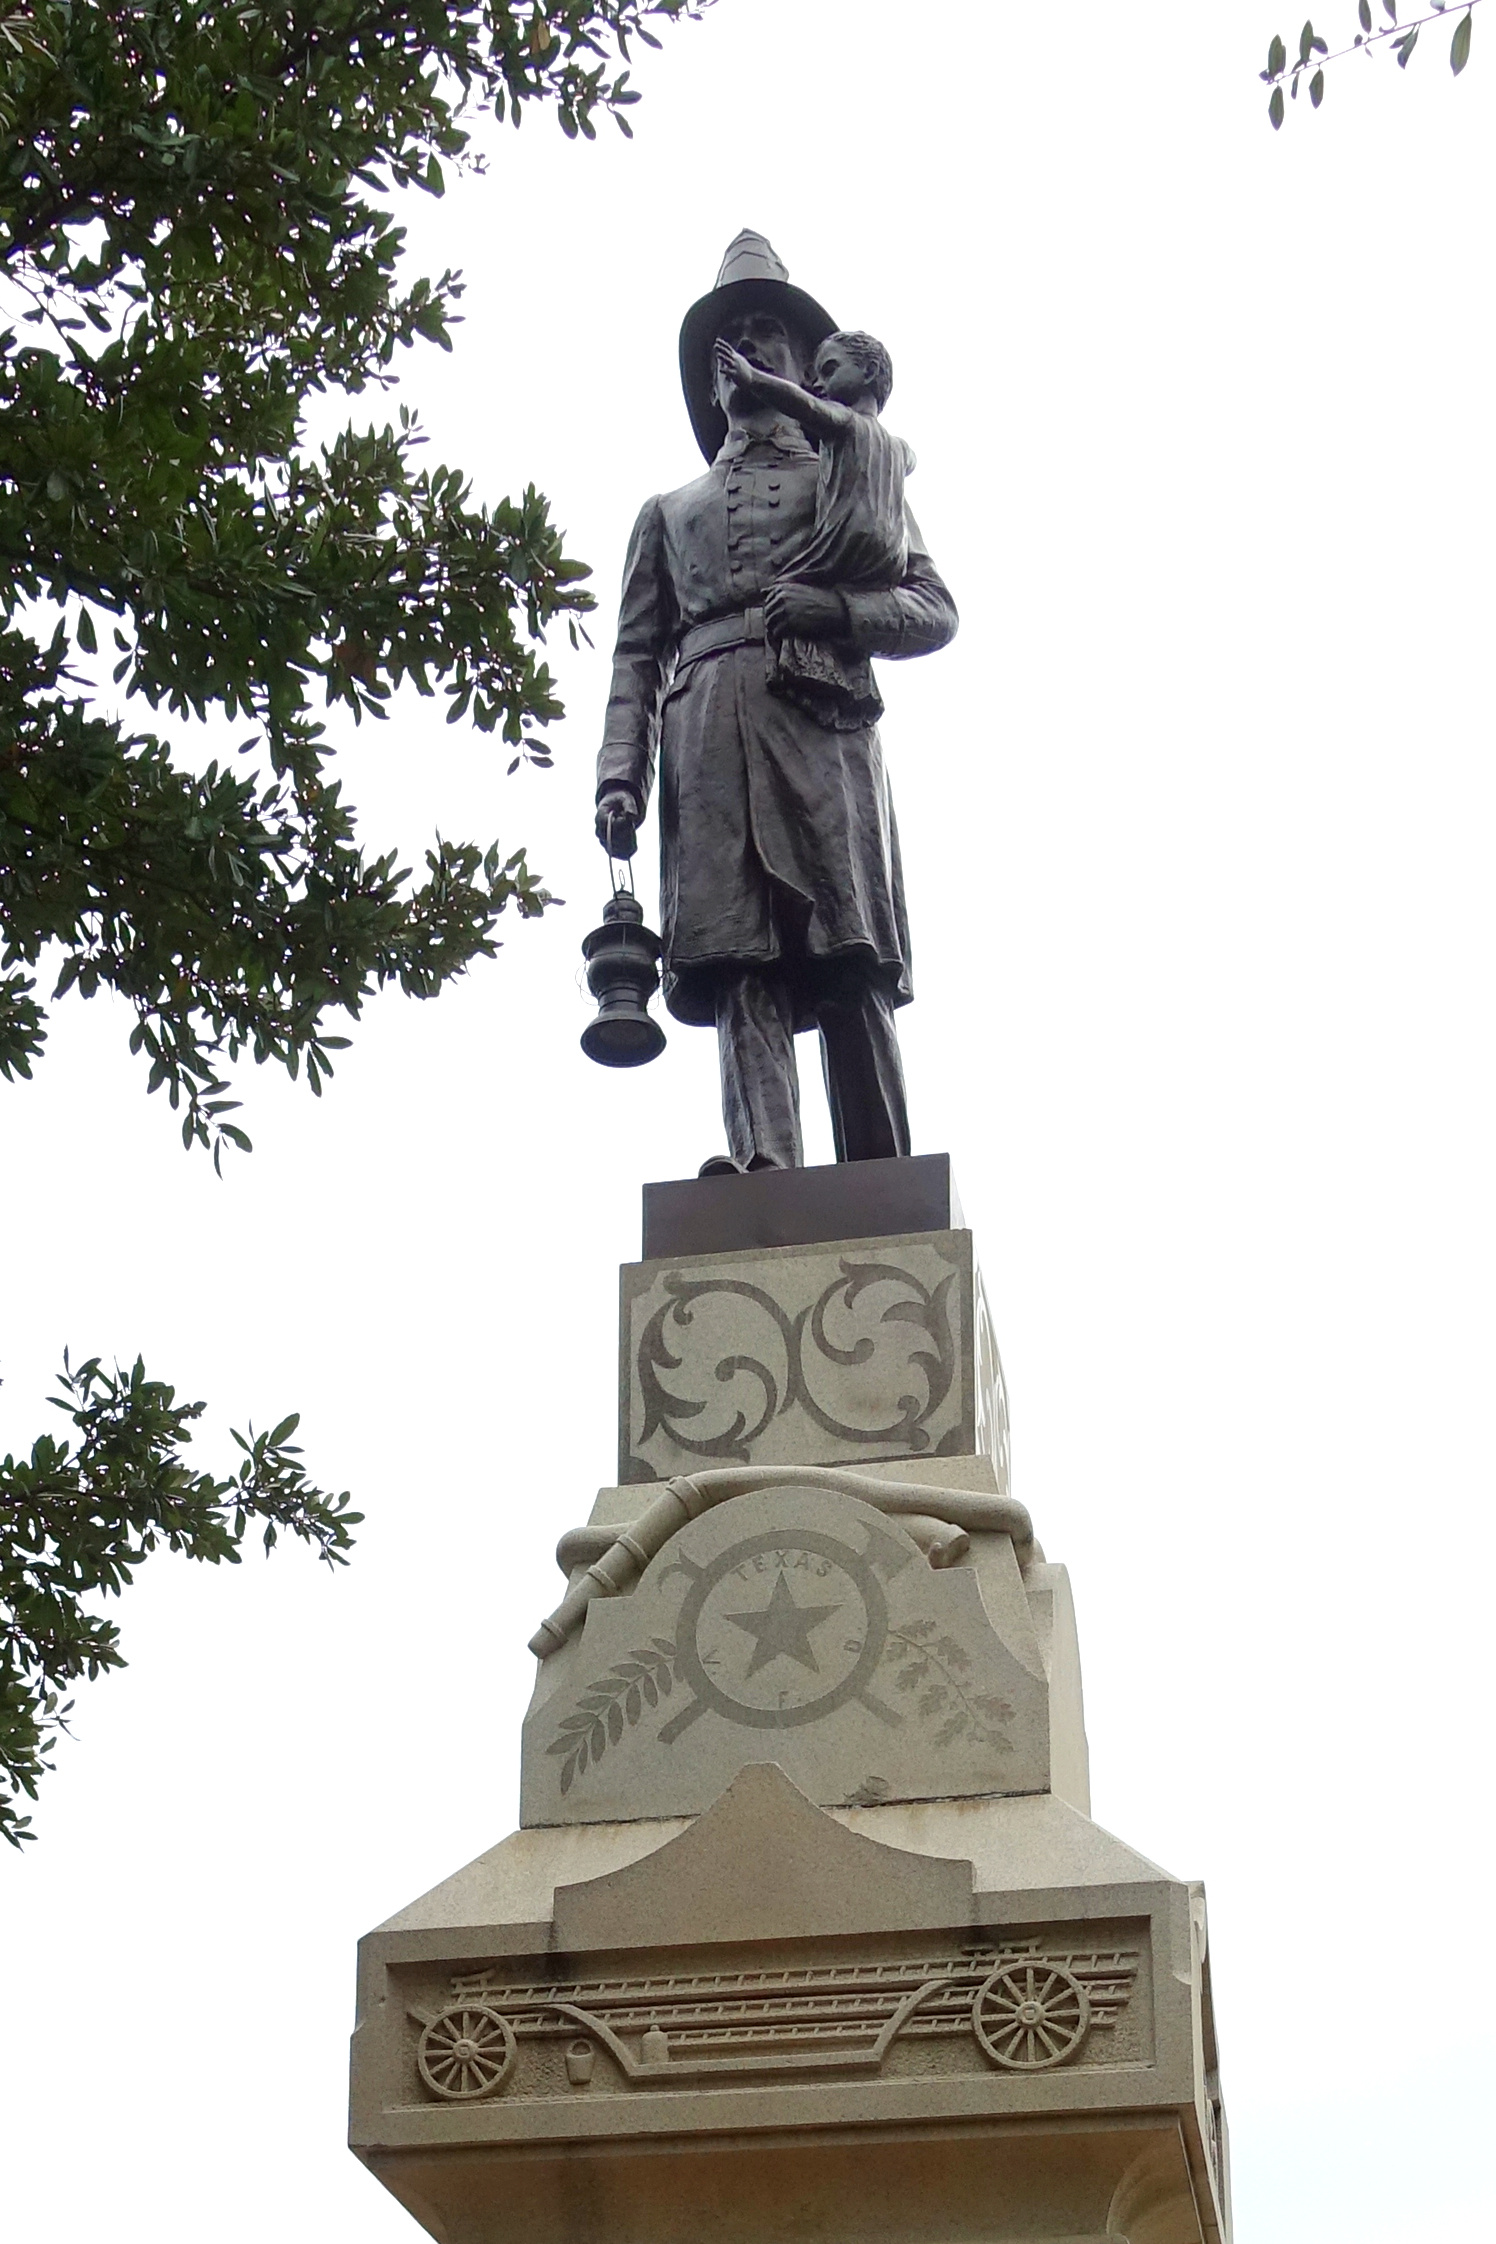 """1896, Entwurf von J. Segesman. <br>Quelle: <a href=""""https://commons.wikimedia.org/wiki/File:Volunteer_Firemen_Monument_-_Texas_State_Capitol_grounds_-_Austin,_Texas_-_DSC08297.jpg"""">User:Daderot / Wikimedia Commons</a><br> Lizenz: <a href=""""https://creativecommons.org/publicdomain/zero/1.0/deed.de"""">Public Domain / Creative Commons CC0 1.0</a>"""